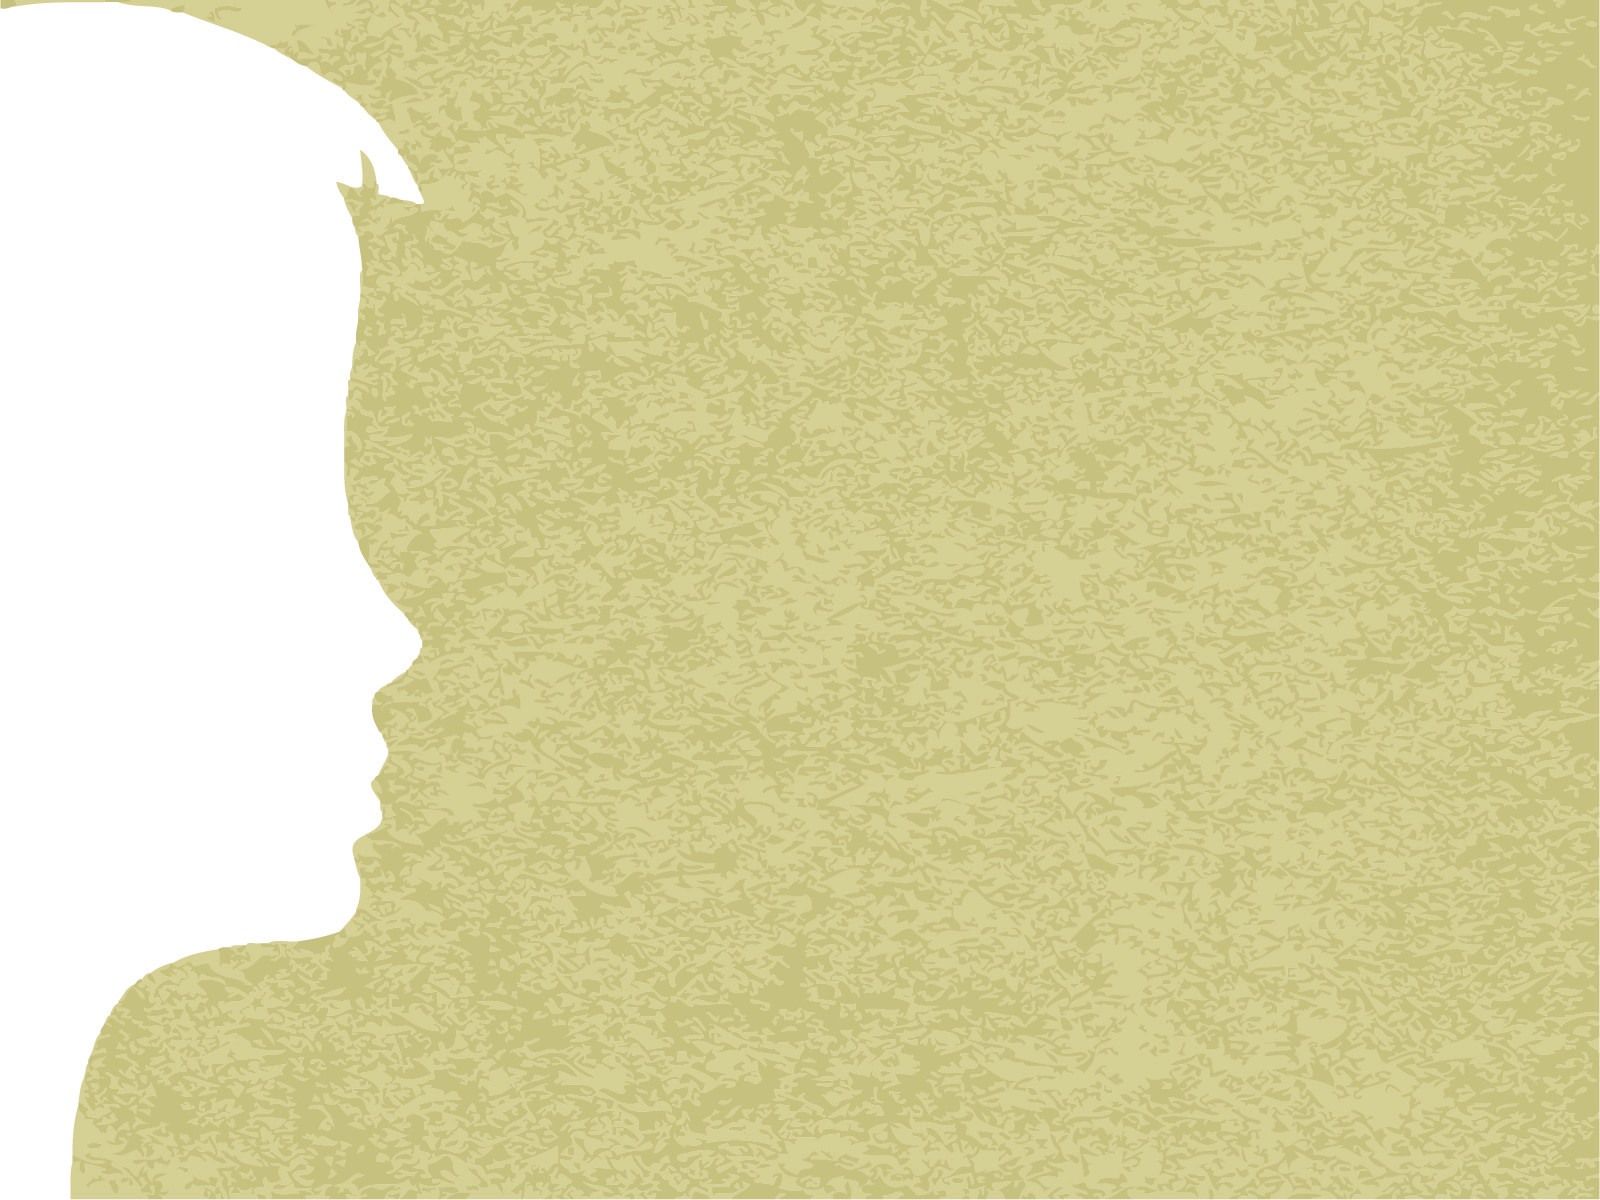 White Face PPT Backgrounds